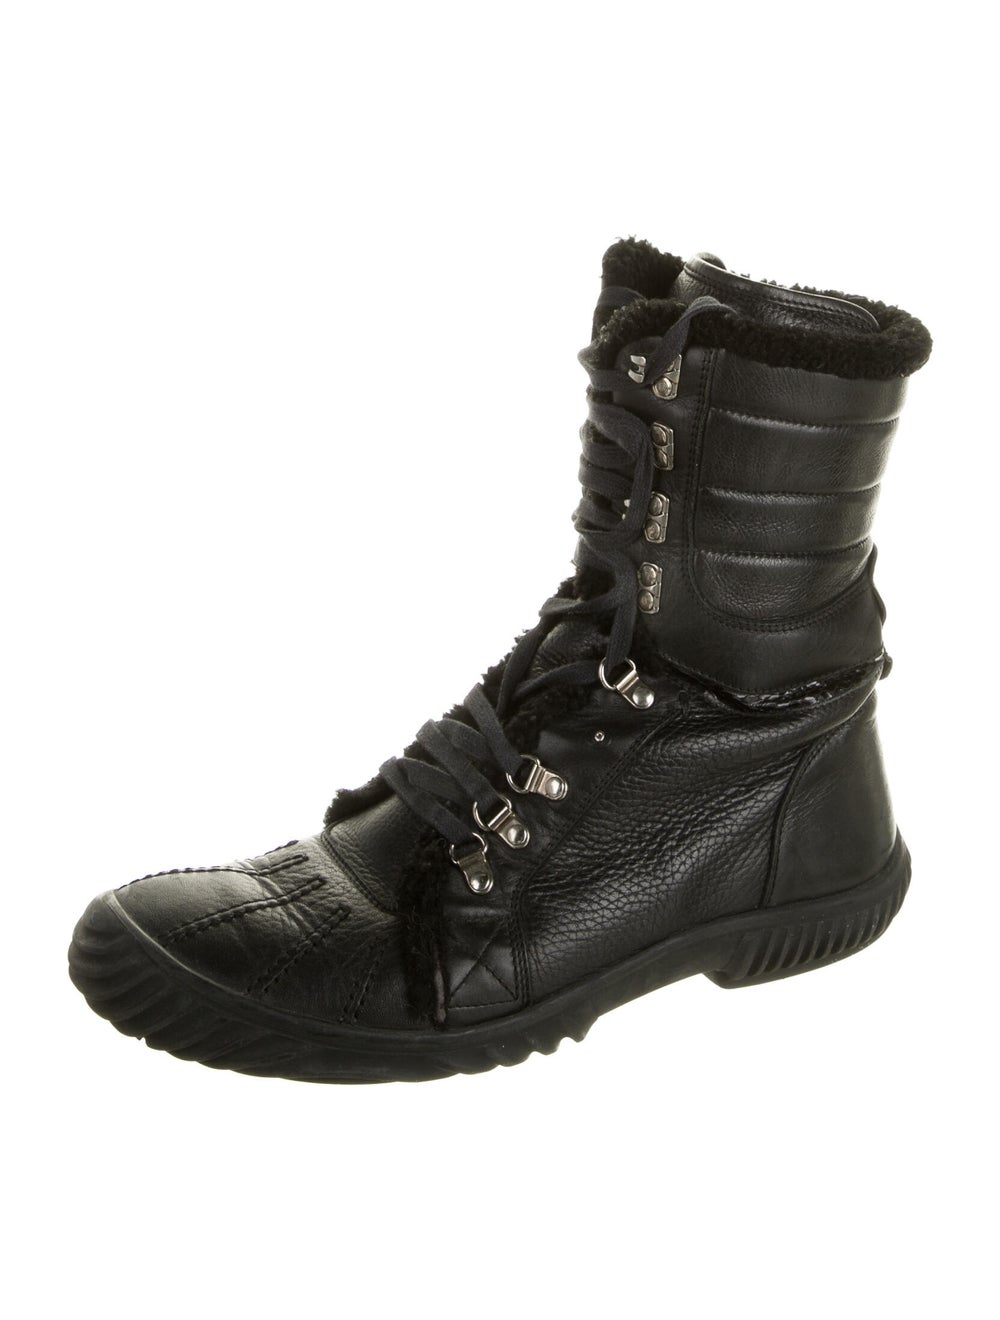 Gucci Leather Combat Boots Black - image 2